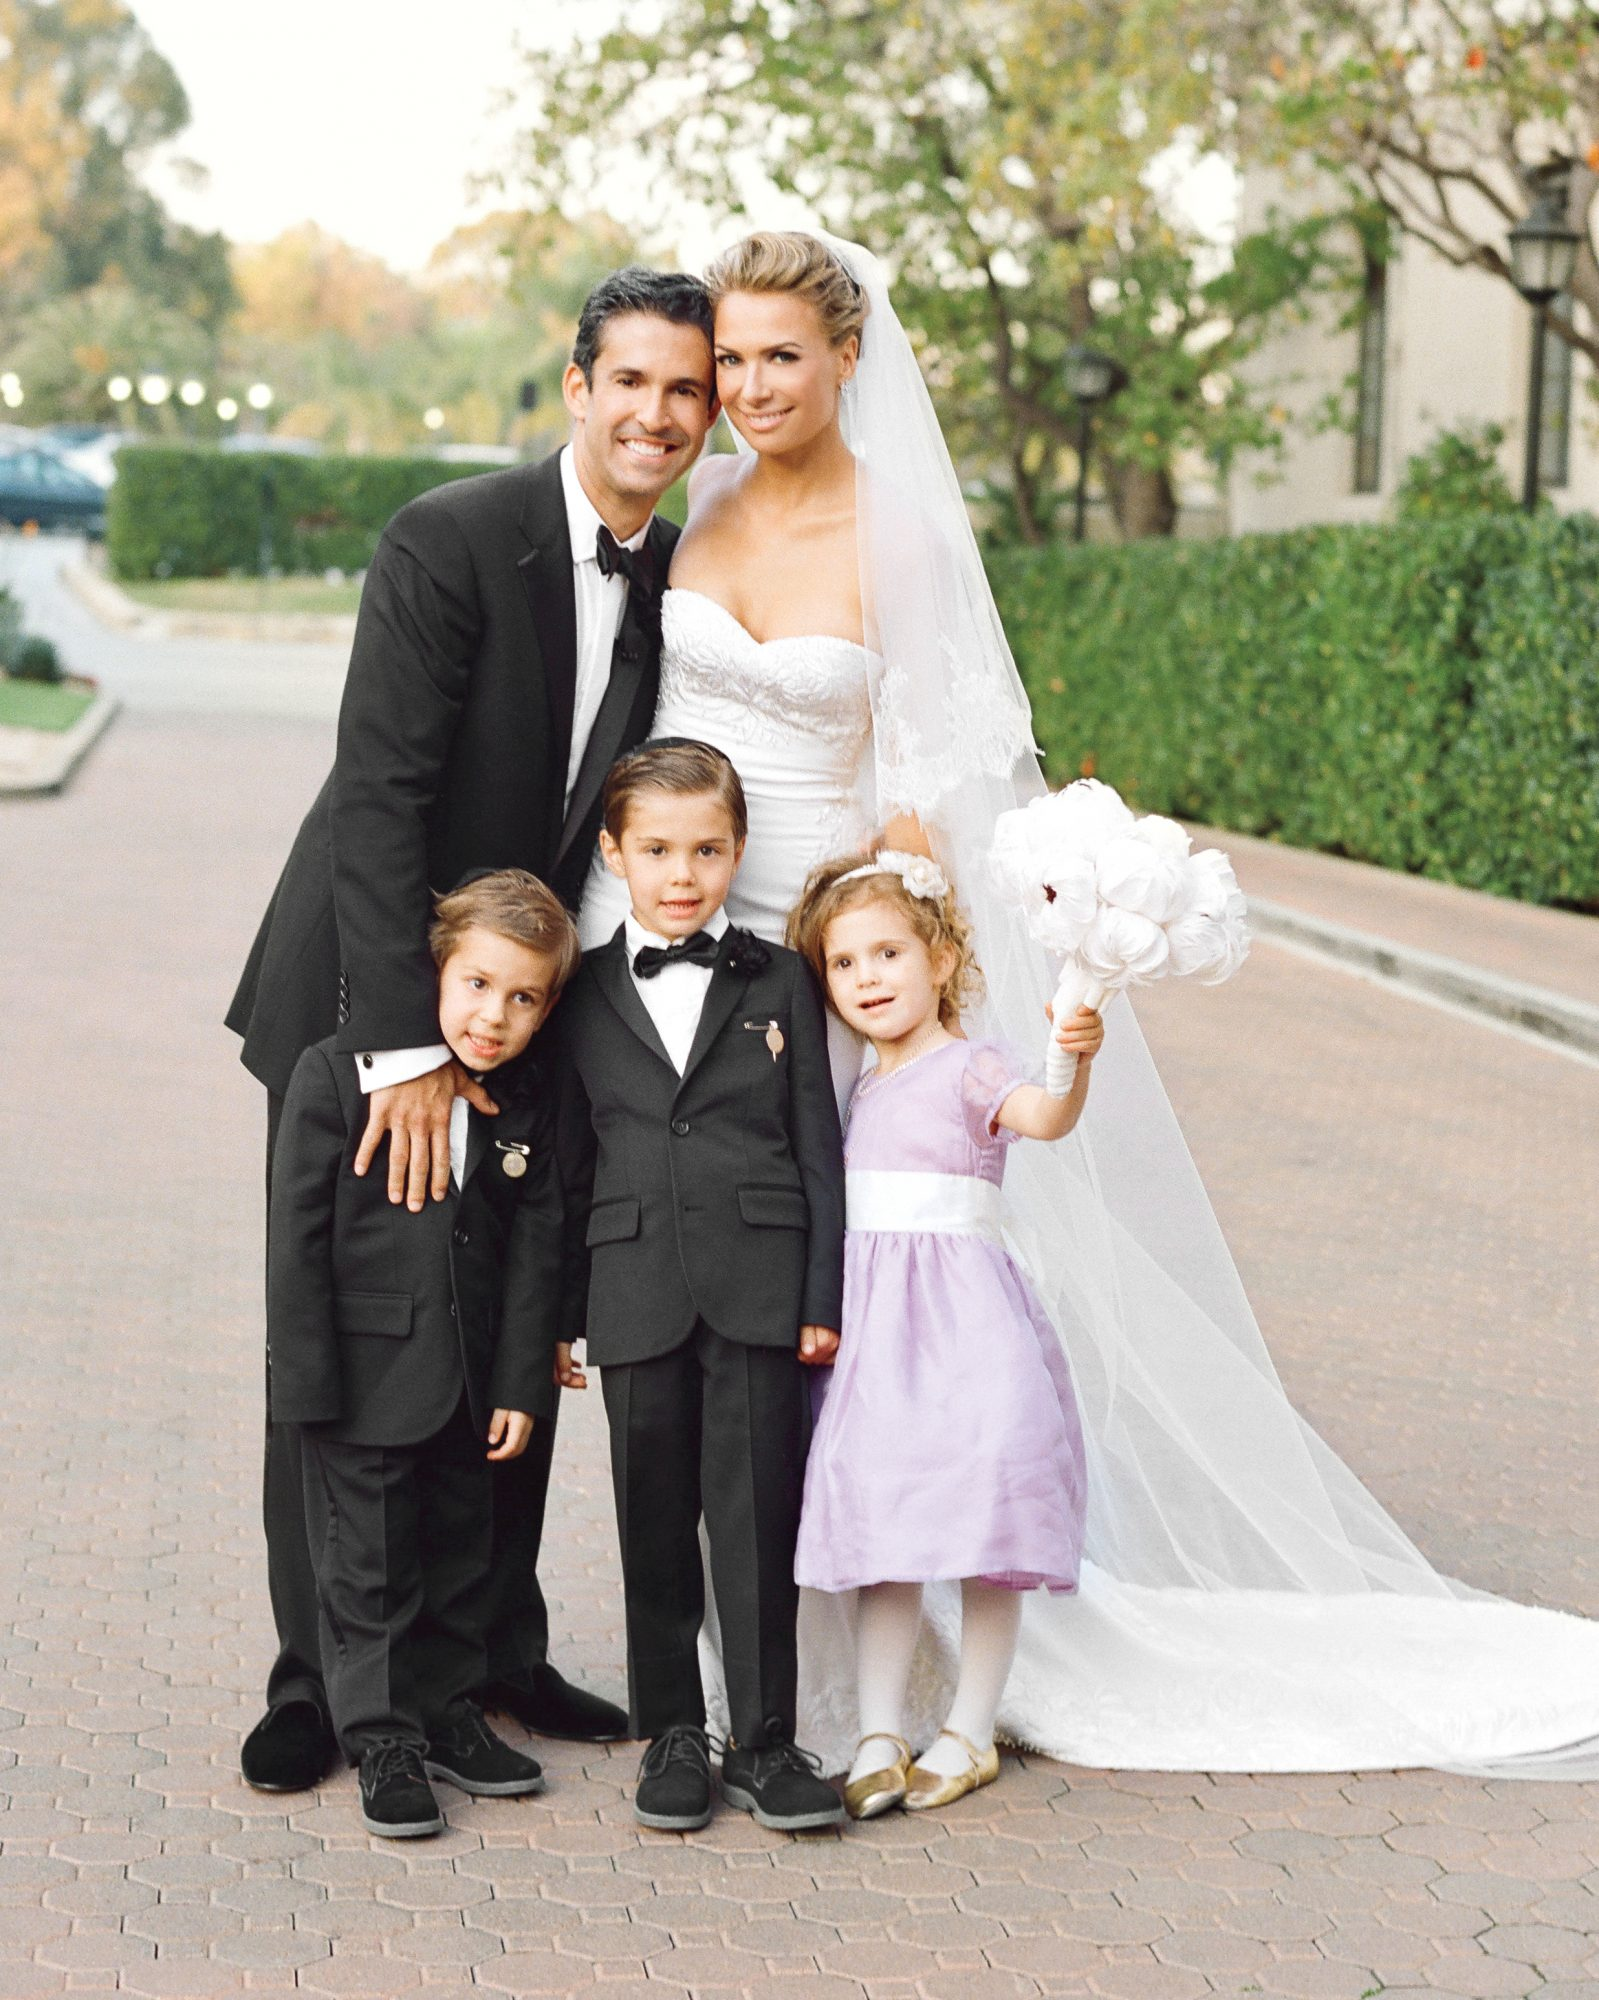 rw-jojo-eric-bride-groom-children-008-elizabeth-messina-ds111226.jpg